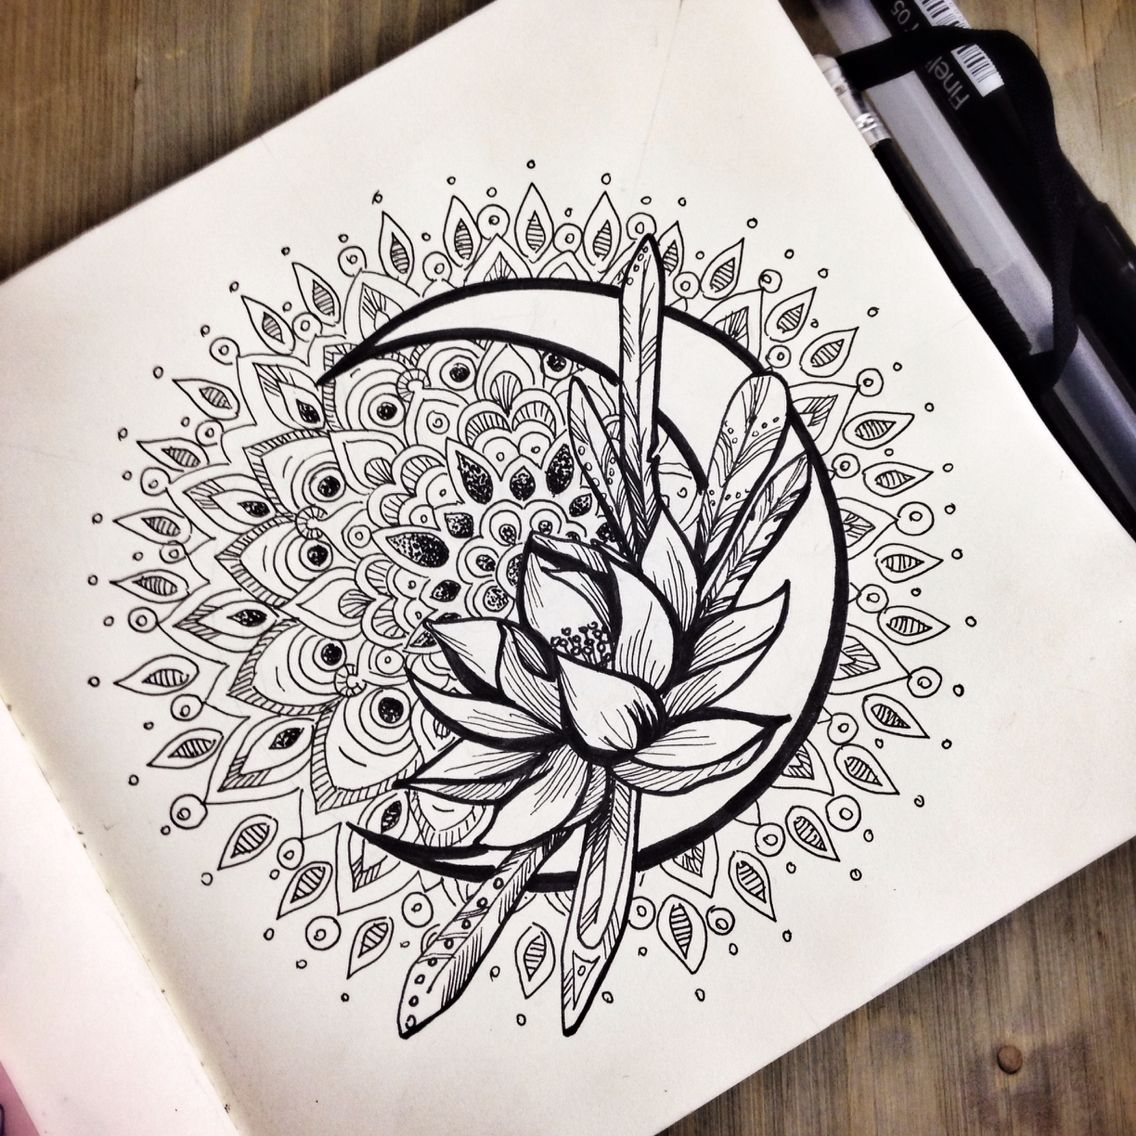 Sailor moon tattoo idea. Instead of the flower it would be